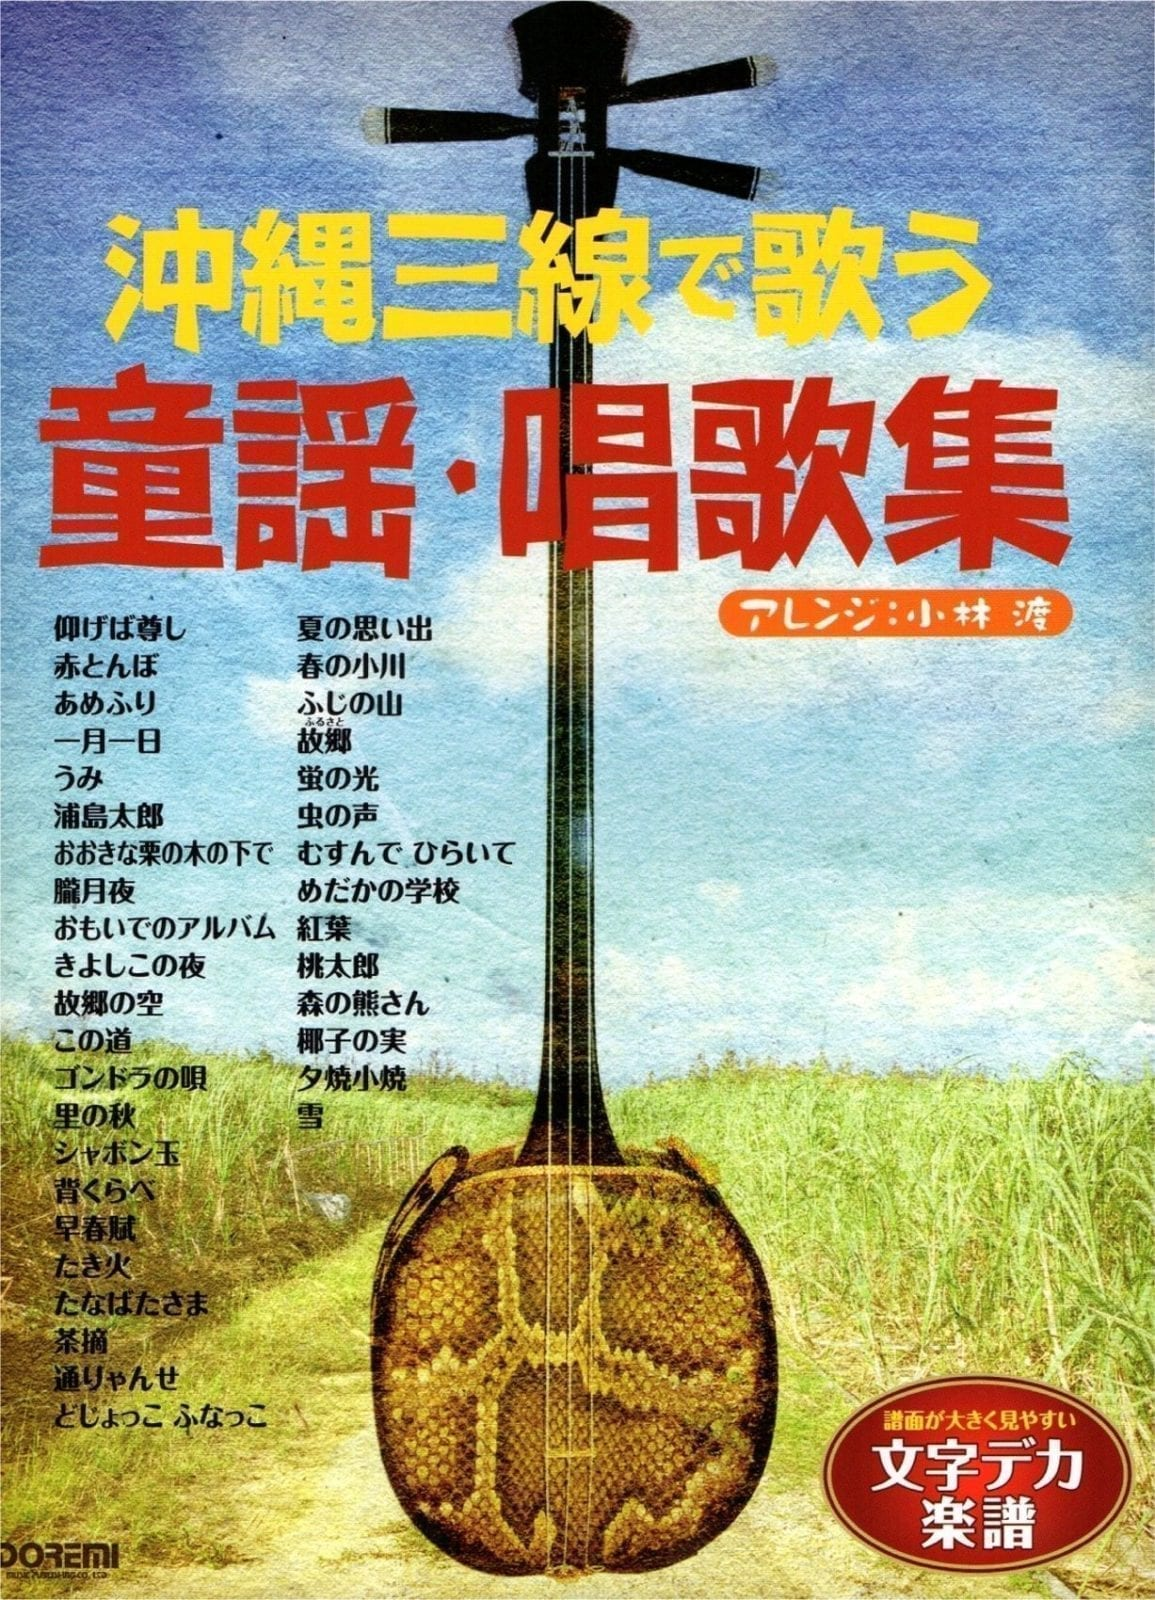 Sanshin(kunkunshi) Sing with Okinawa Sanshin  - children's song・song book 【Mail available products】